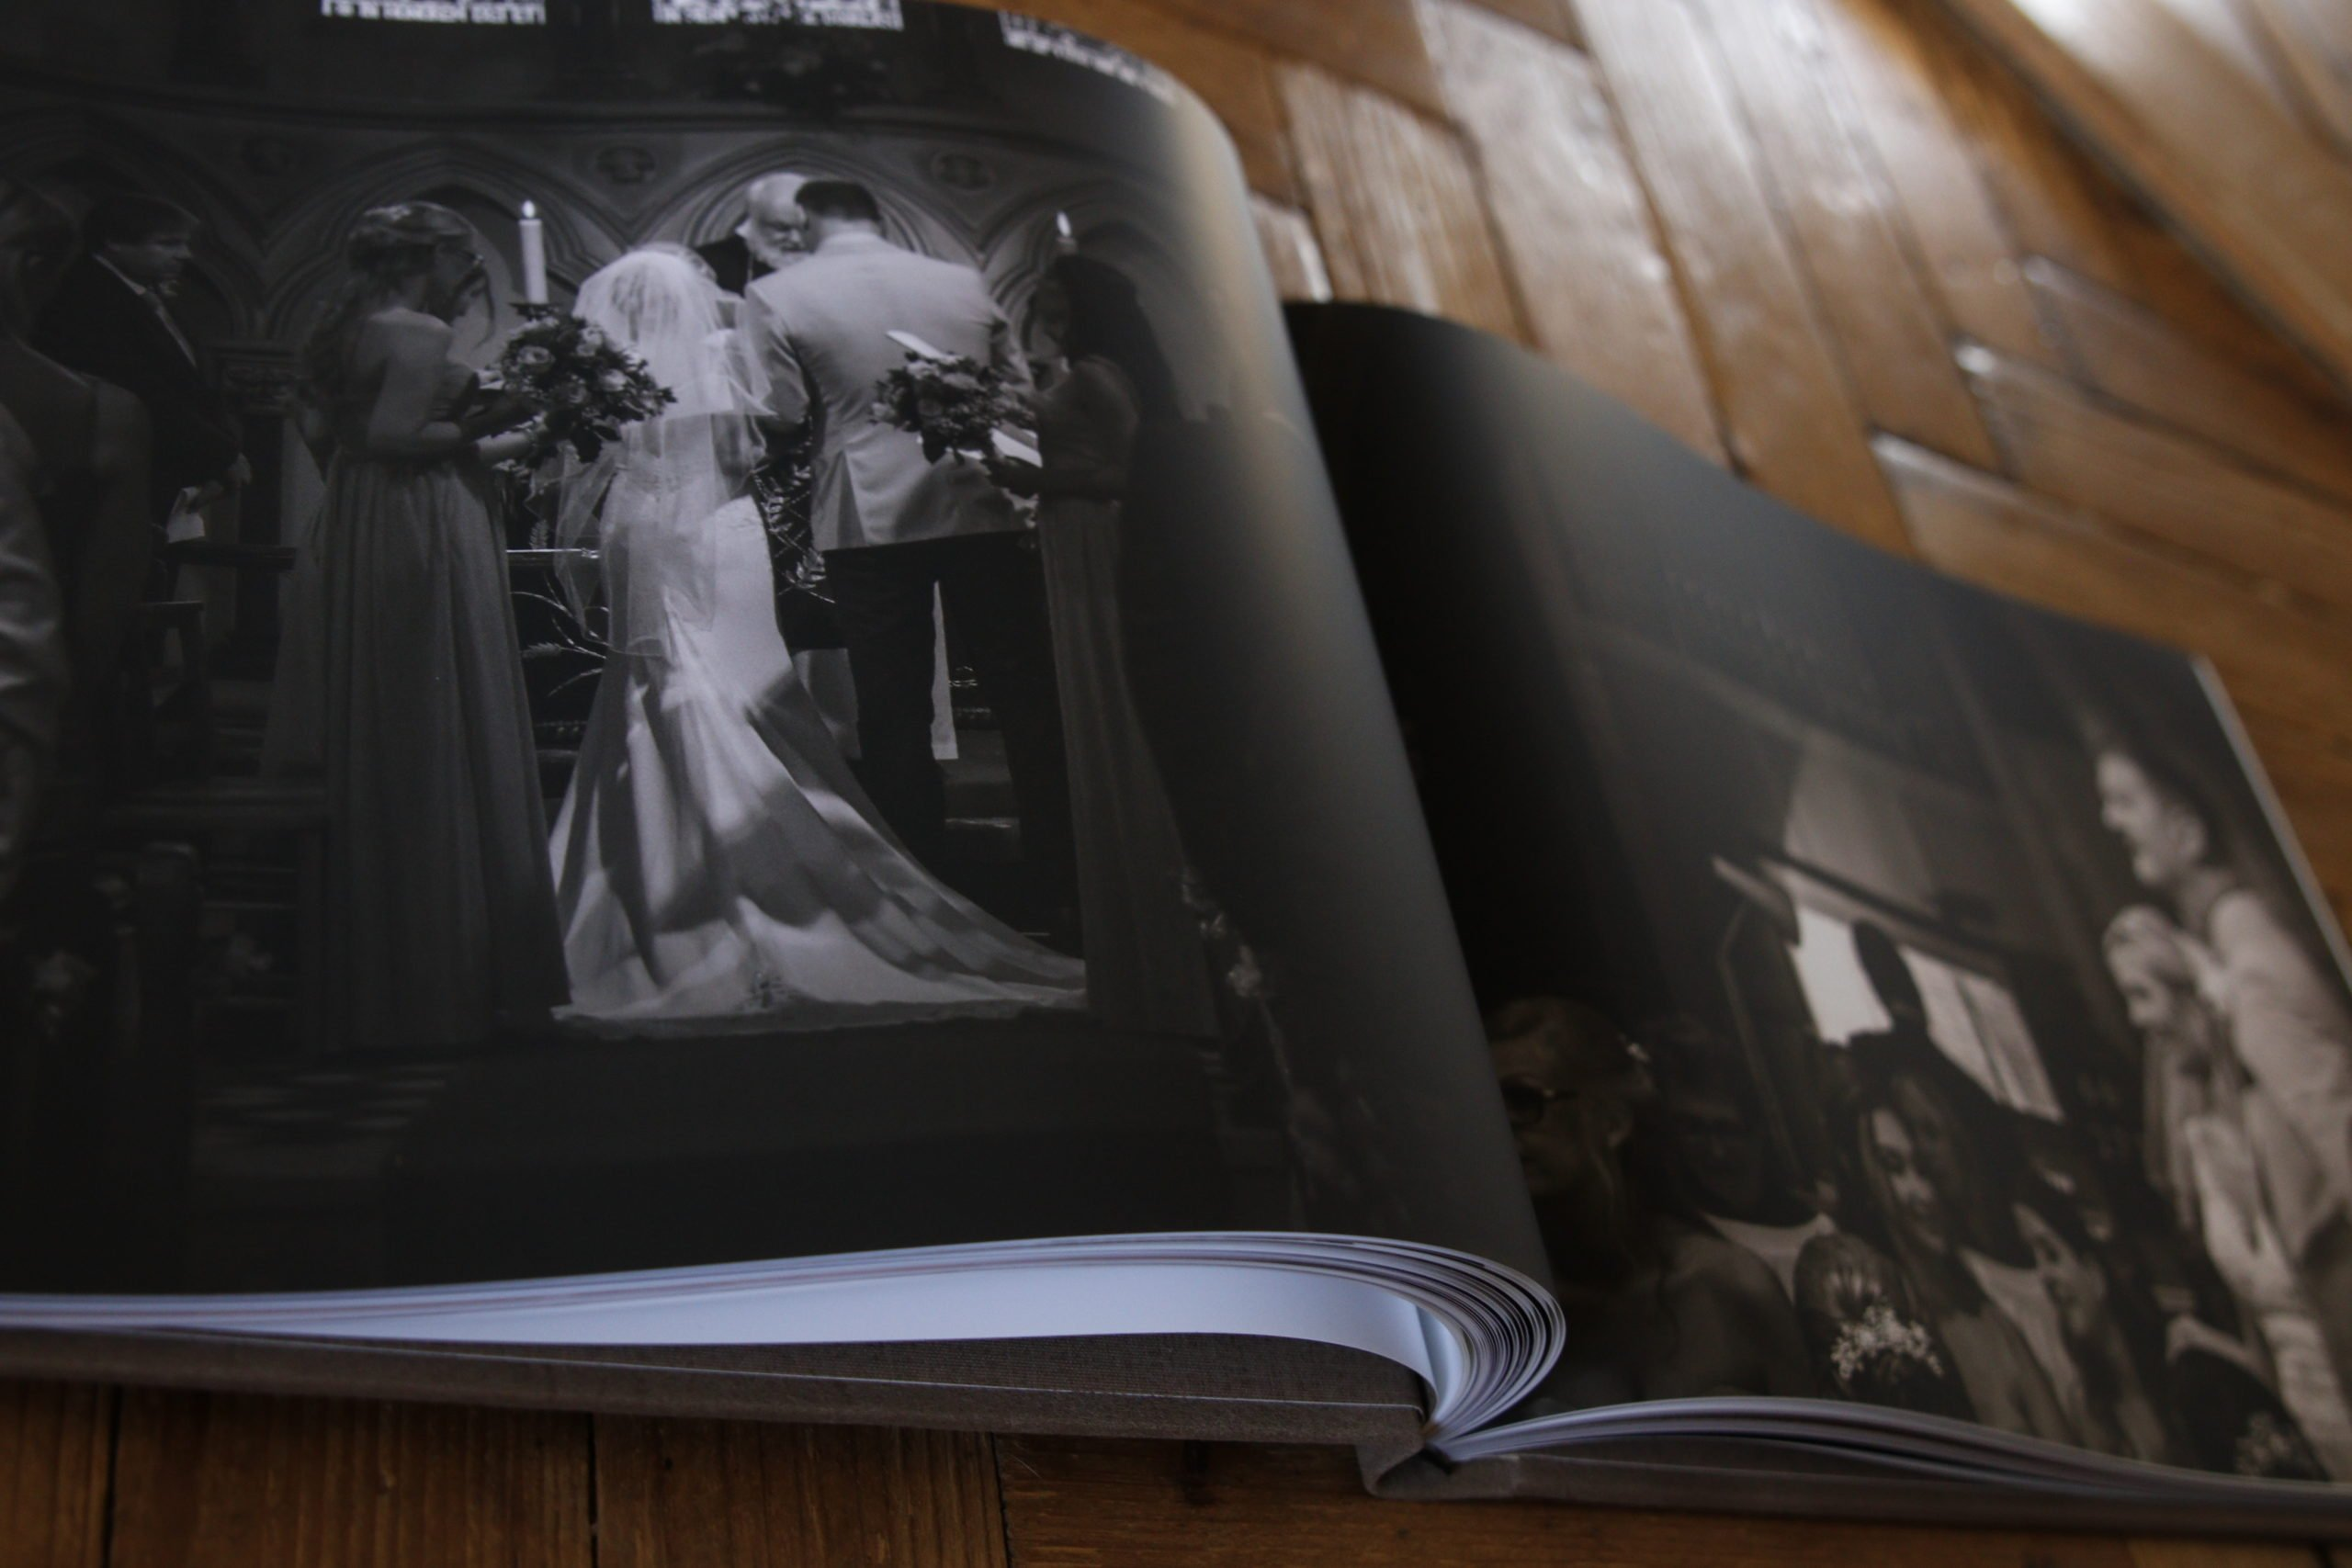 open book showing wedding